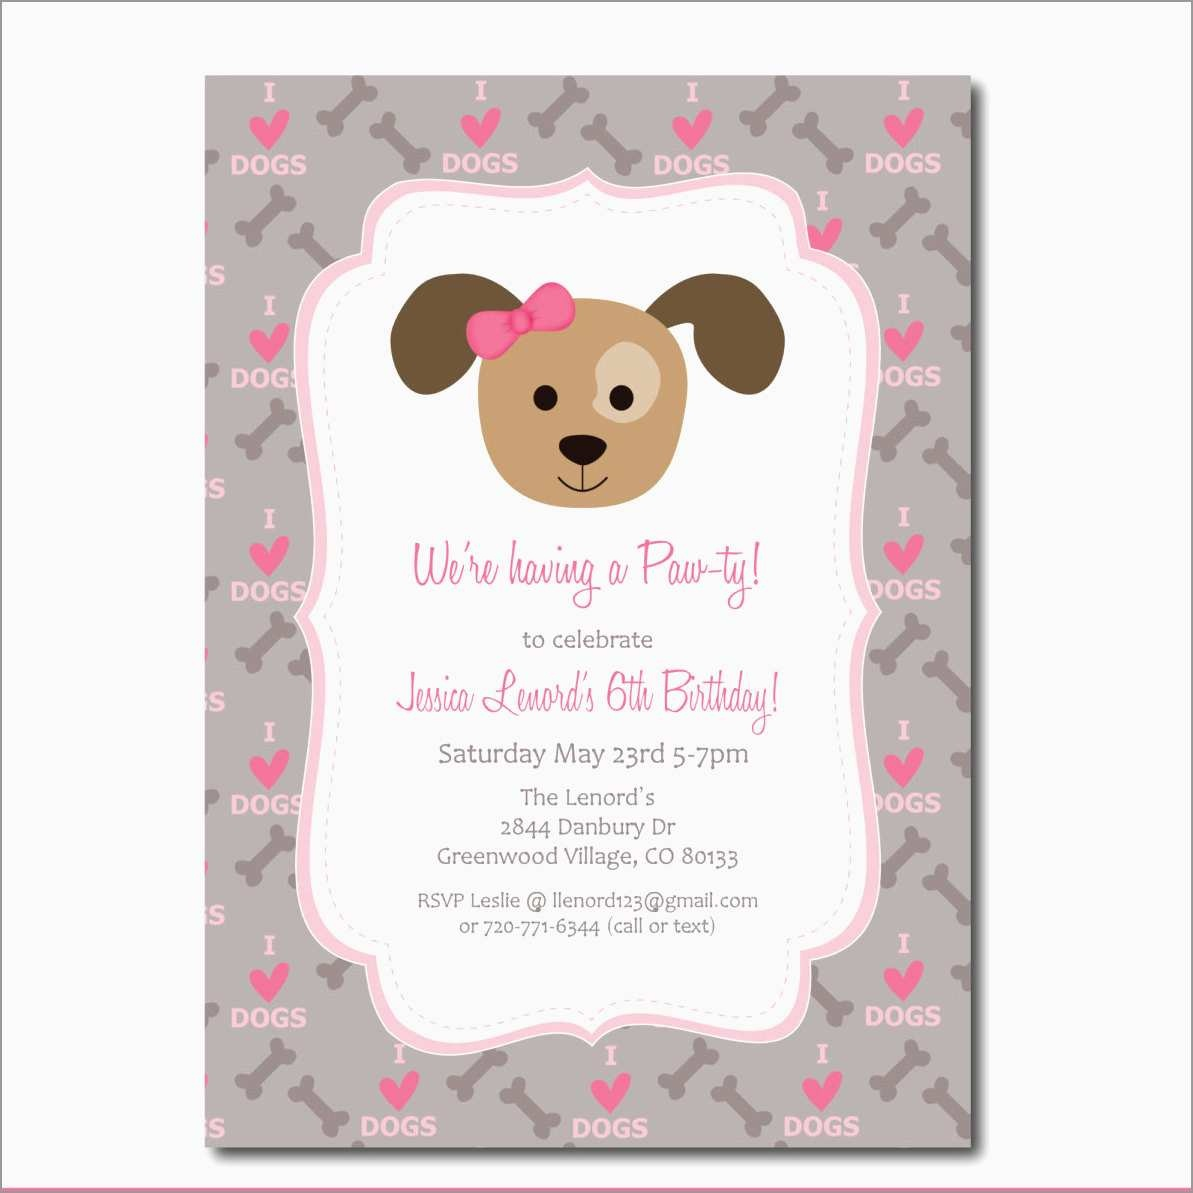 Awesome Dog Birthday Party Invitations Templates Free | Best Of Template - Dog Birthday Invitations Free Printable